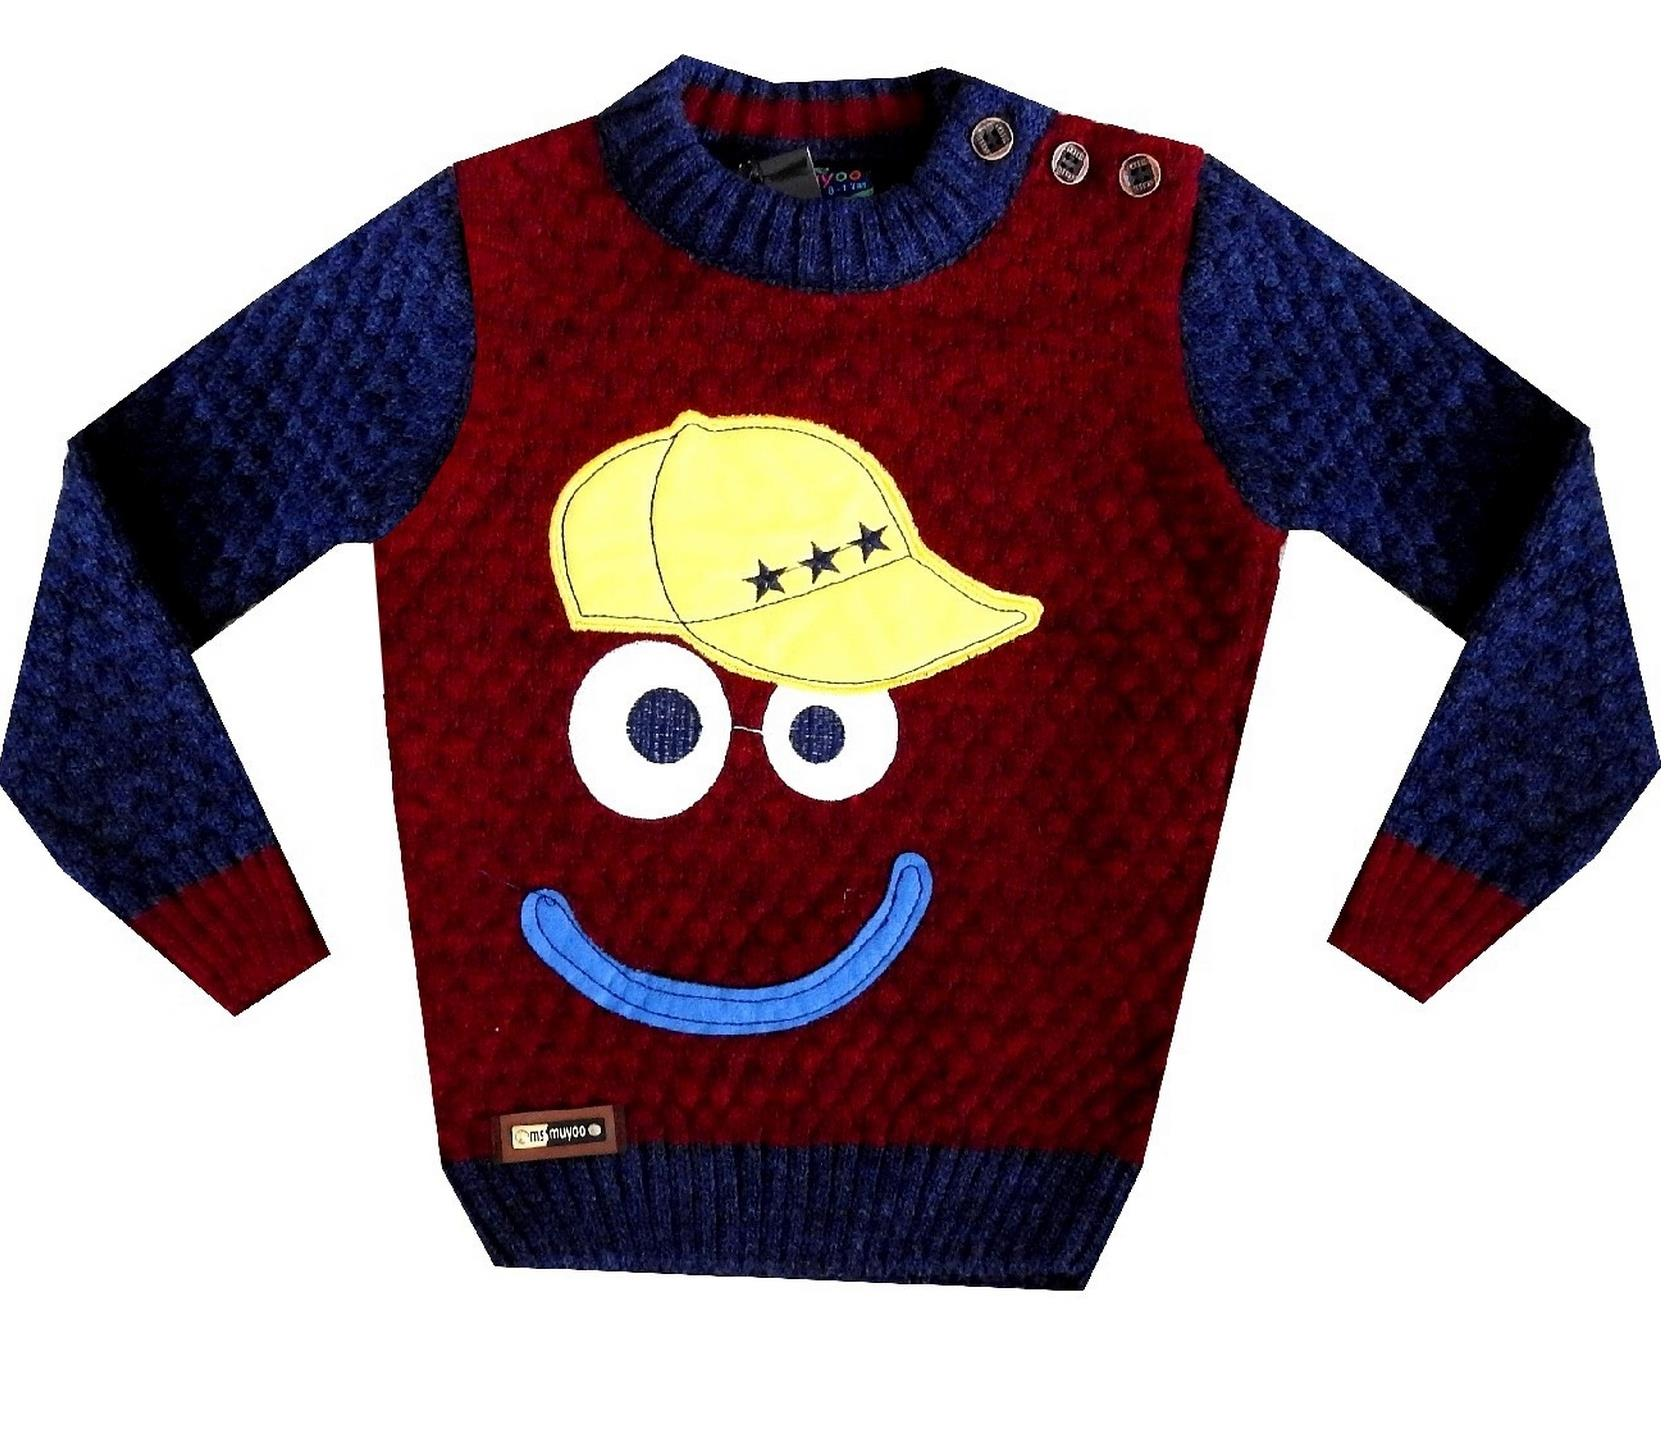 CAPPED SMILE FACE PRINT KNITTED DESIGN SWEATER FOR BOY (1-2-3-4 AGE)